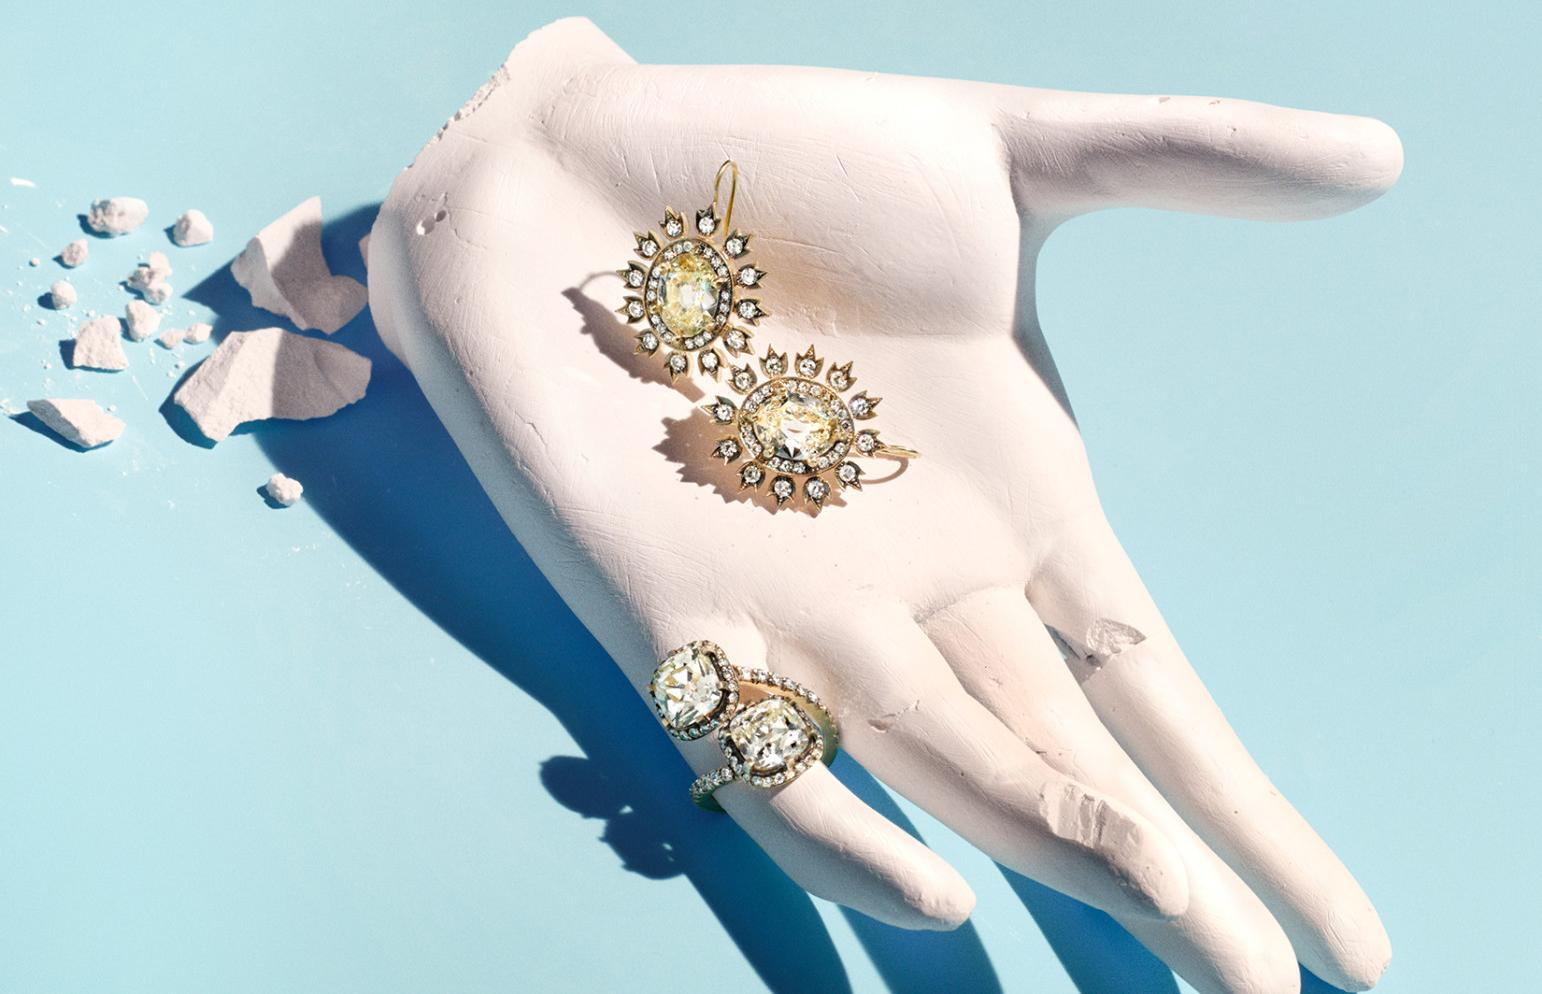 W's jewelry and accessories director shares her favorite pieces of the season: http://t.co/MQHeRYnsGz http://t.co/wgezQ4vvjc